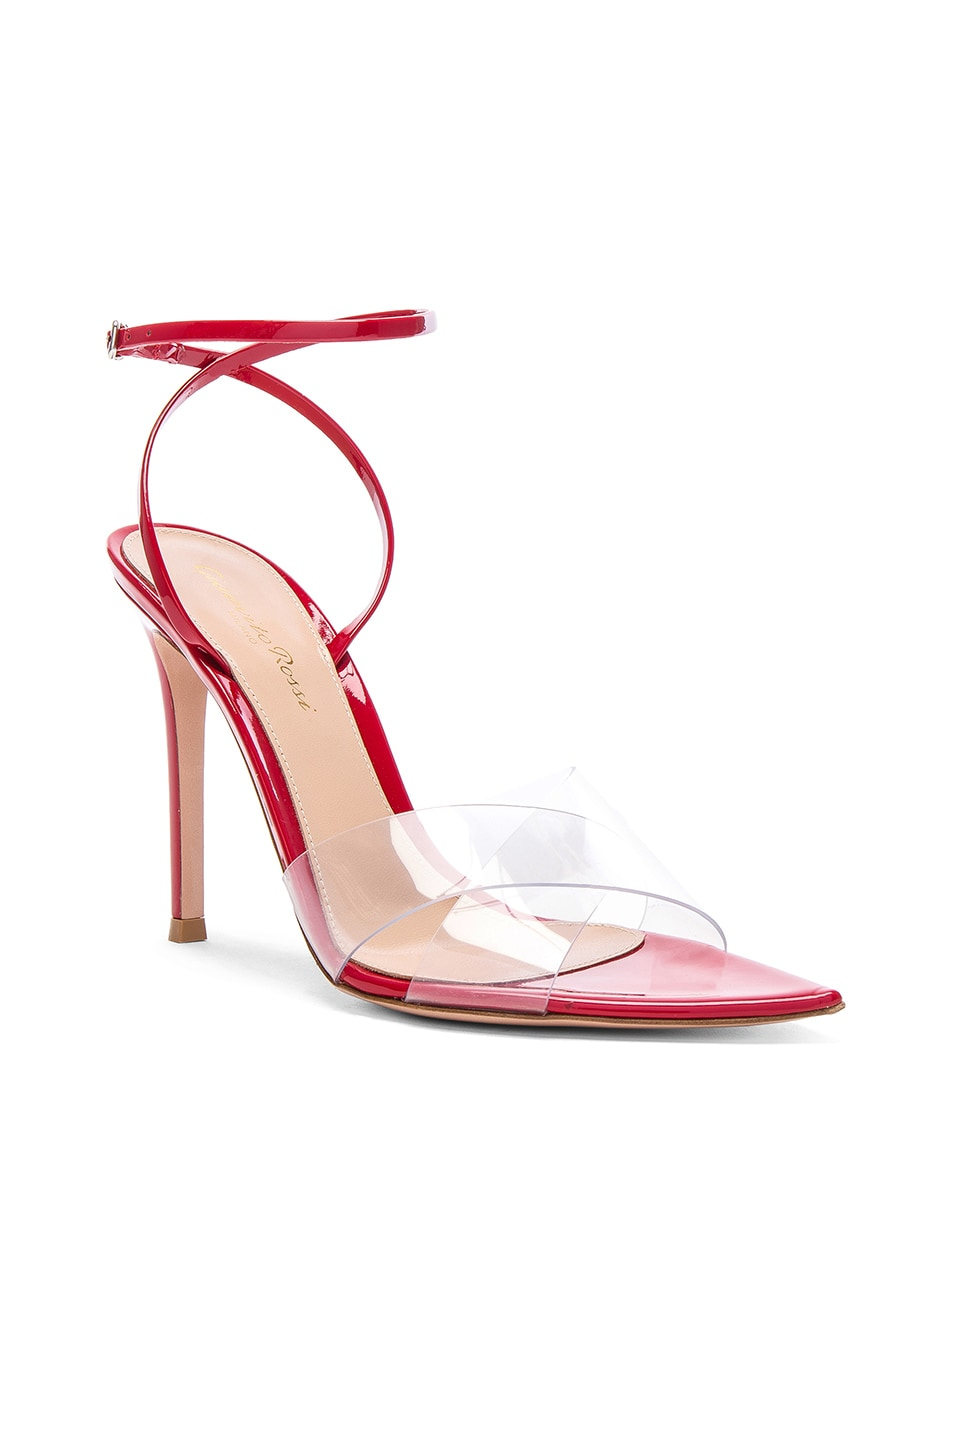 Image 2 of Gianvito Rossi Patent & Plexi Stark Ankle Strap Sandals in Transparent & Tabasco Red